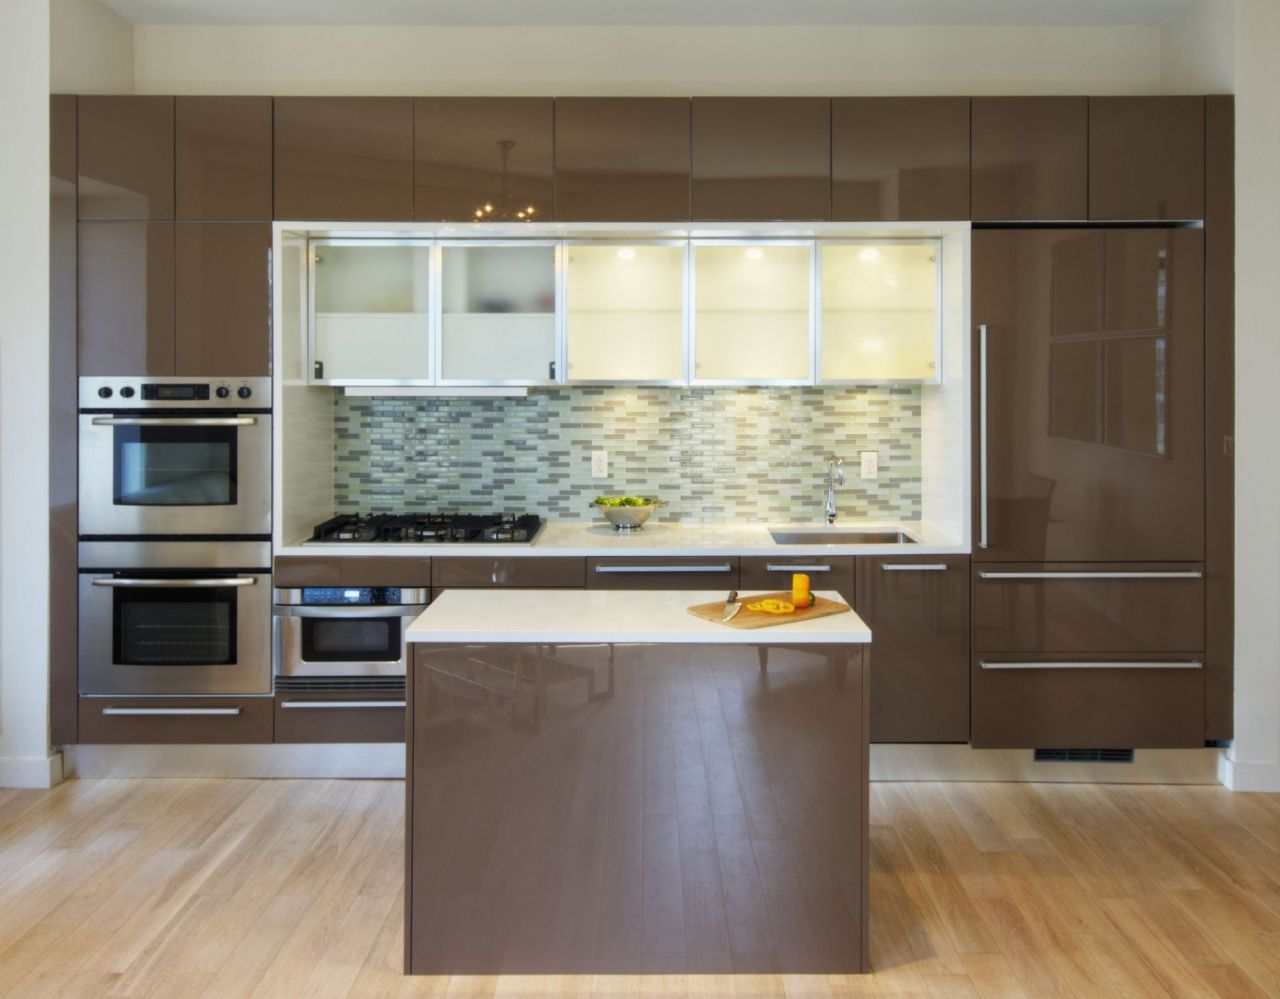 Discount Kitchen Cabinets Near Me In 2020 Cheap Kitchen Cabinets Kitchen Cabinet Makers Cost Of Kitchen Cabinets